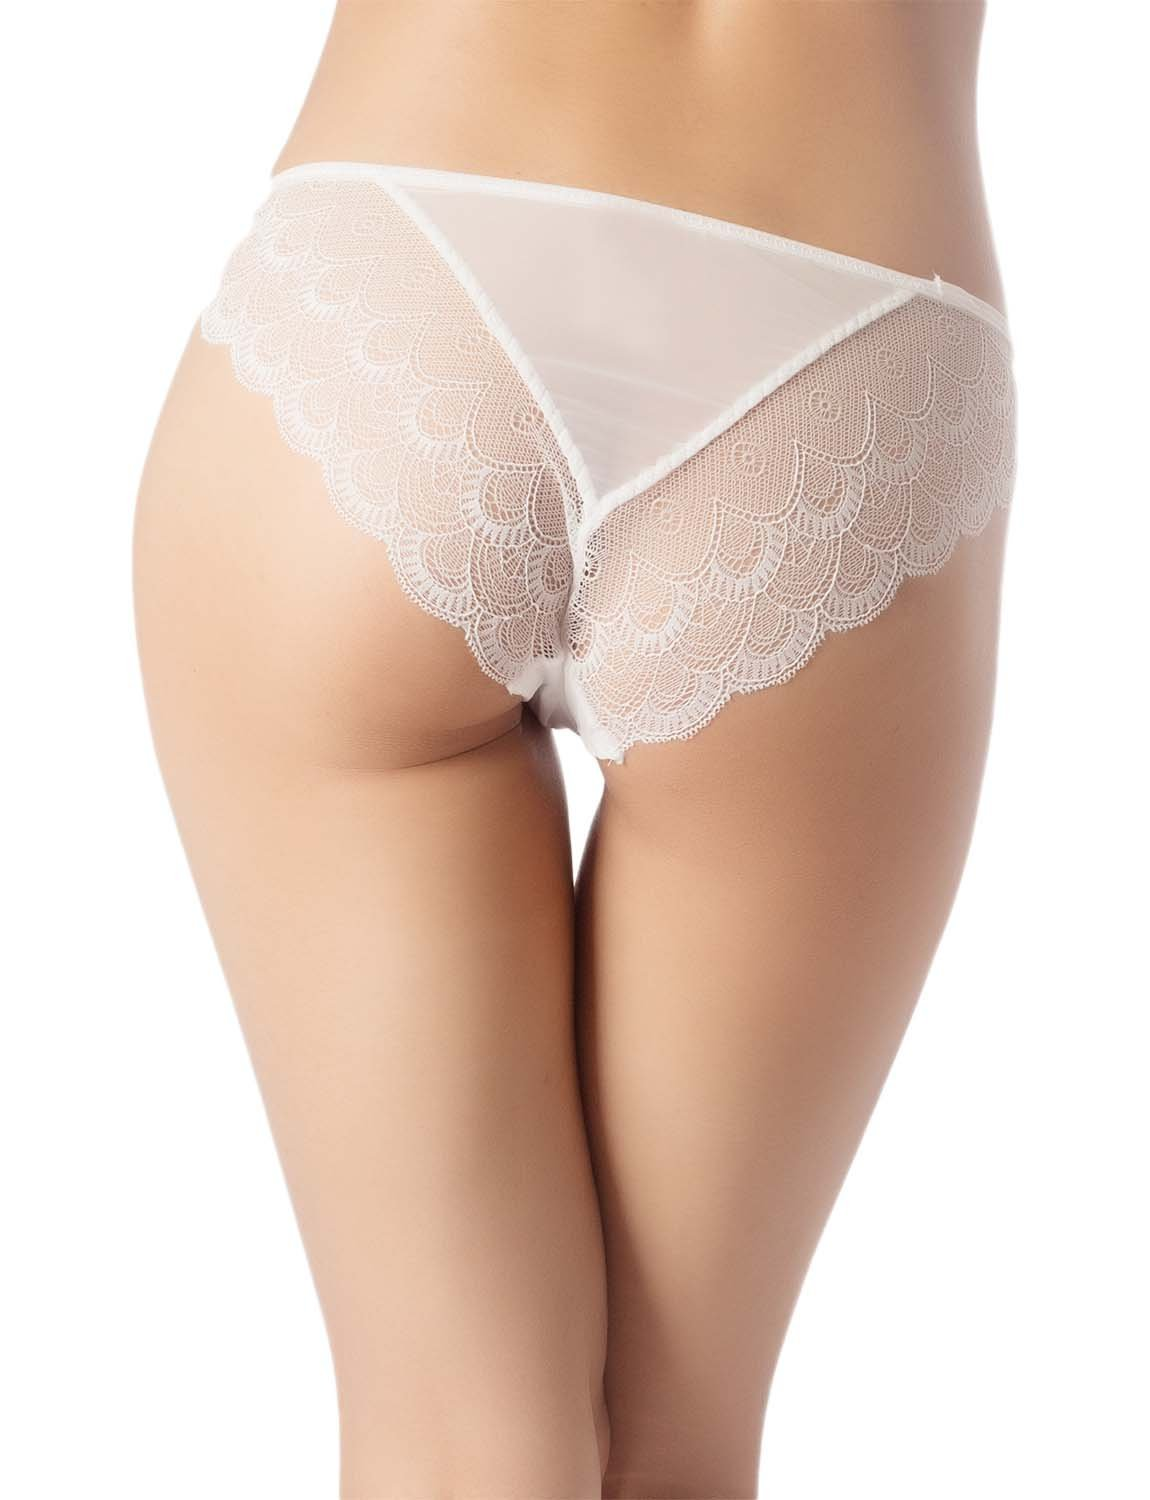 Women's Cotton Layered Lace Wings Trimmed See-Through Low Rise Brief Panty, Size: L, White